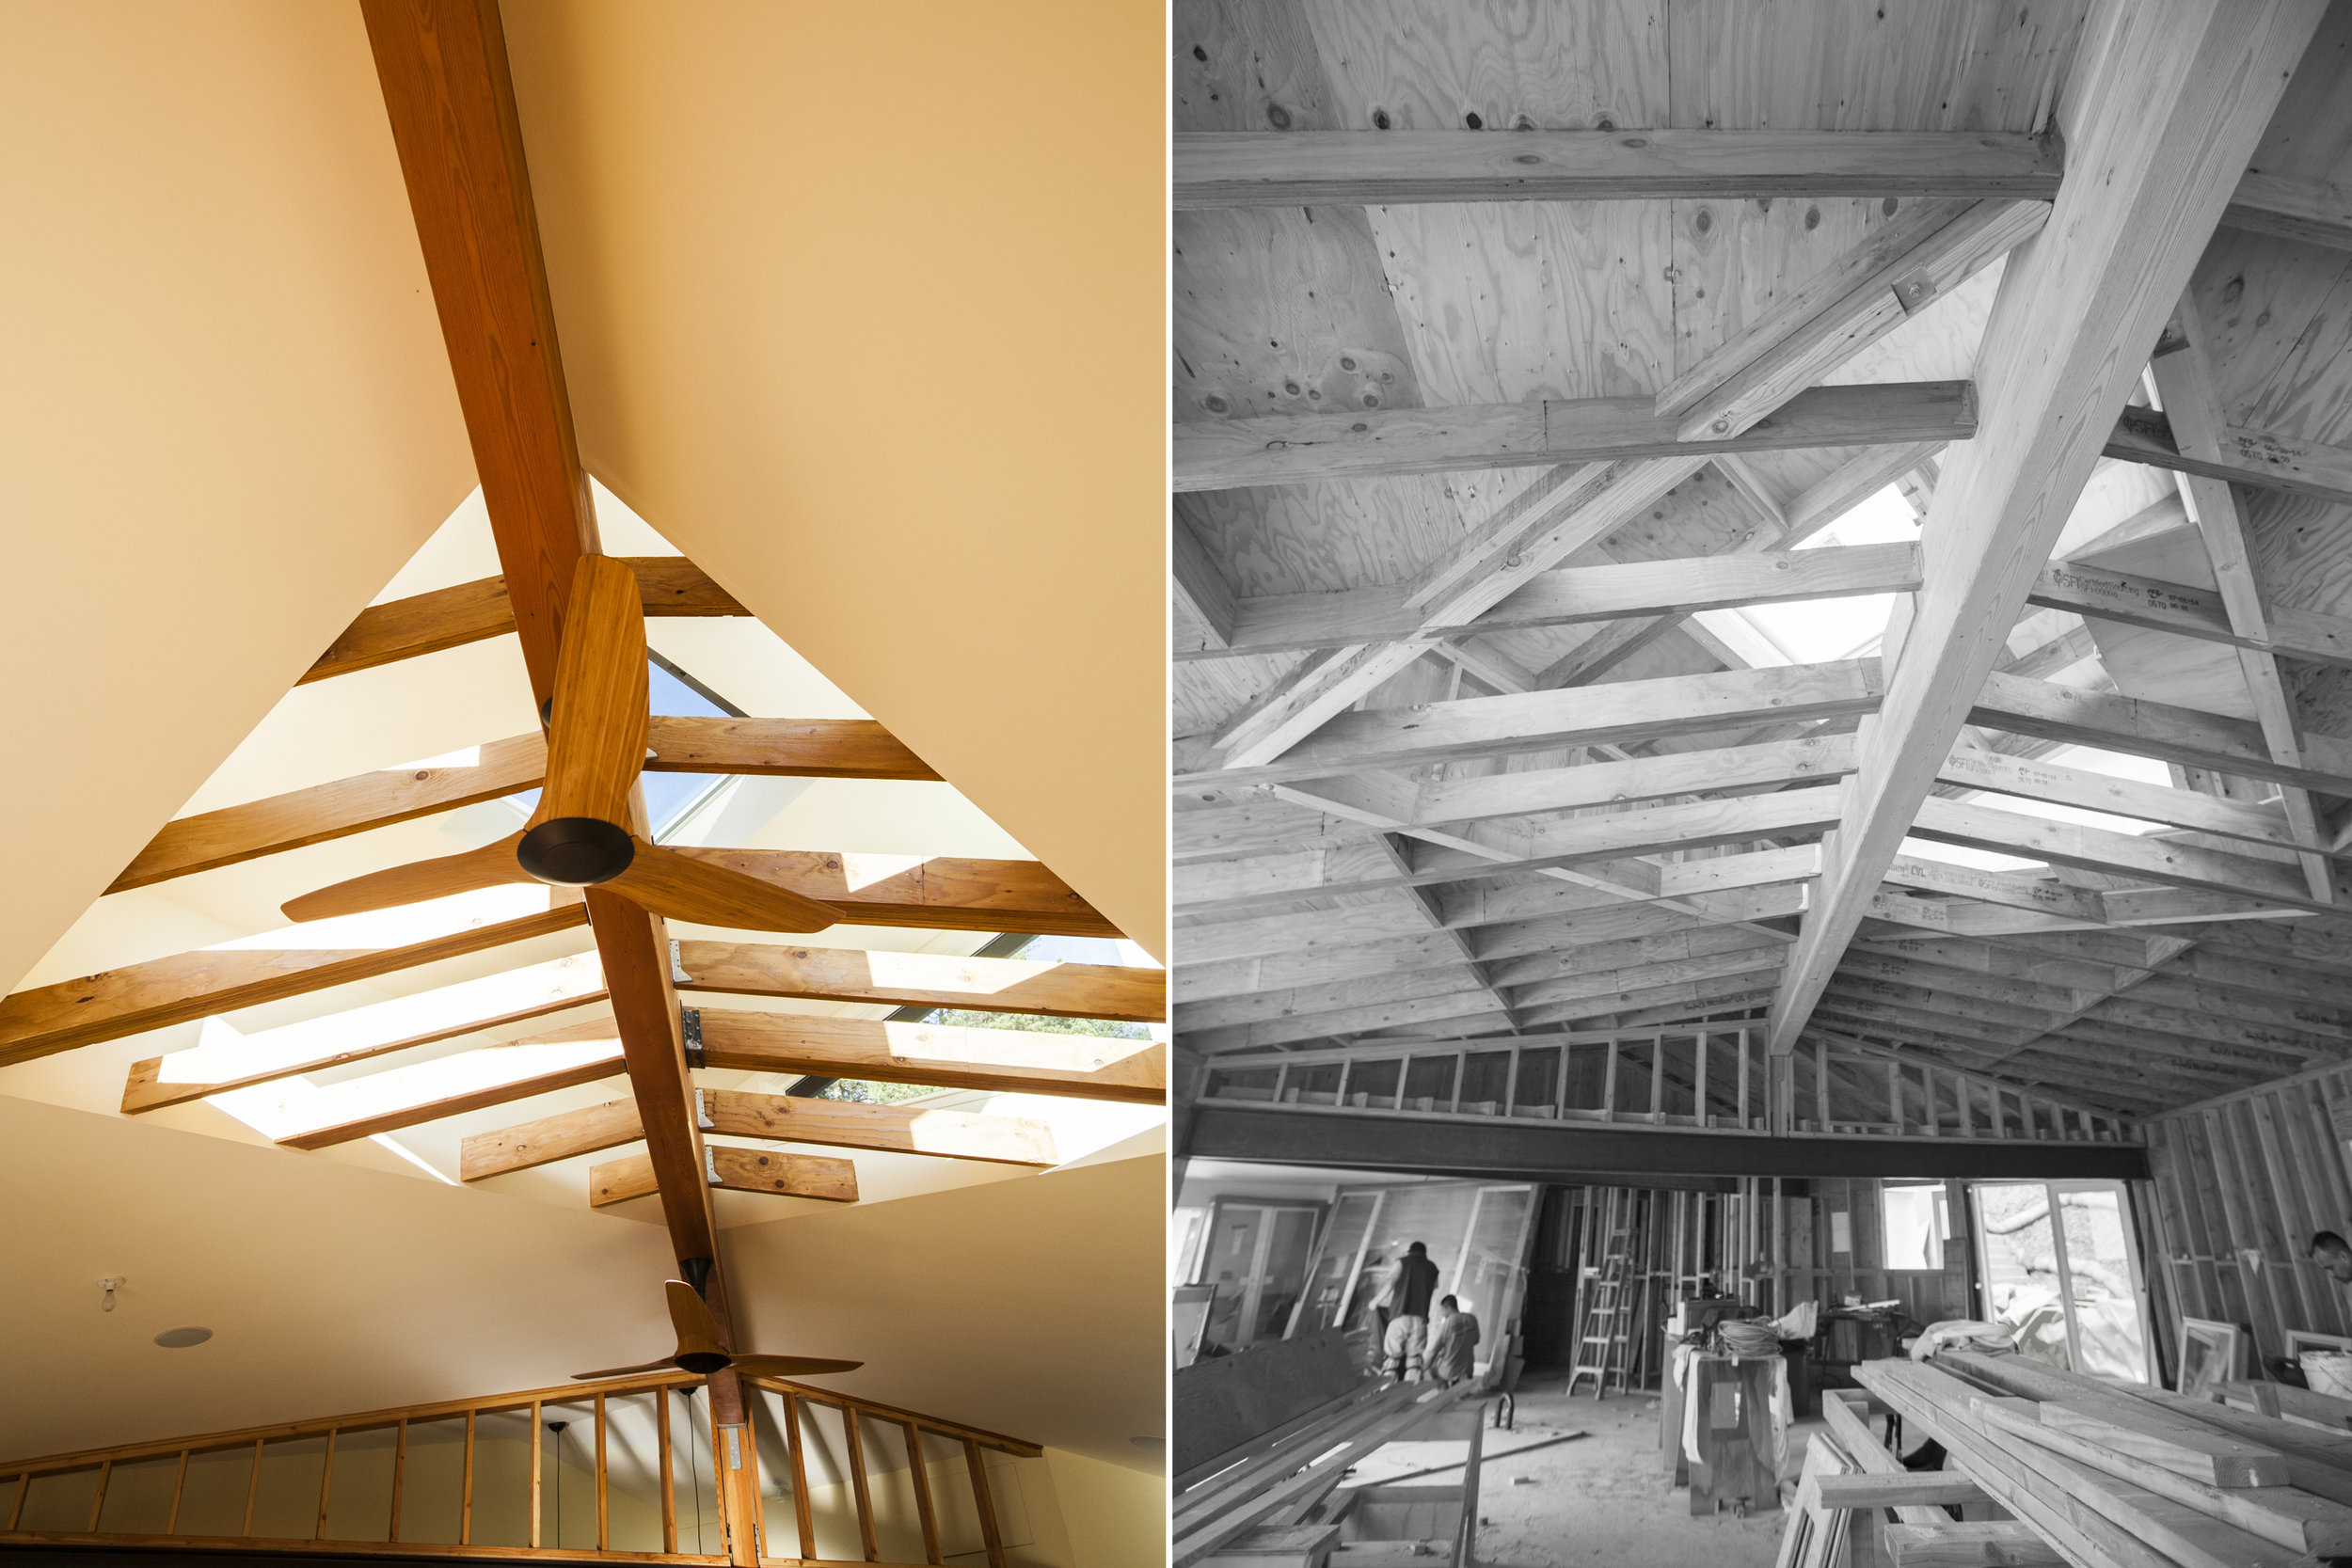 The exposed ceiling beams add interest to the interior.